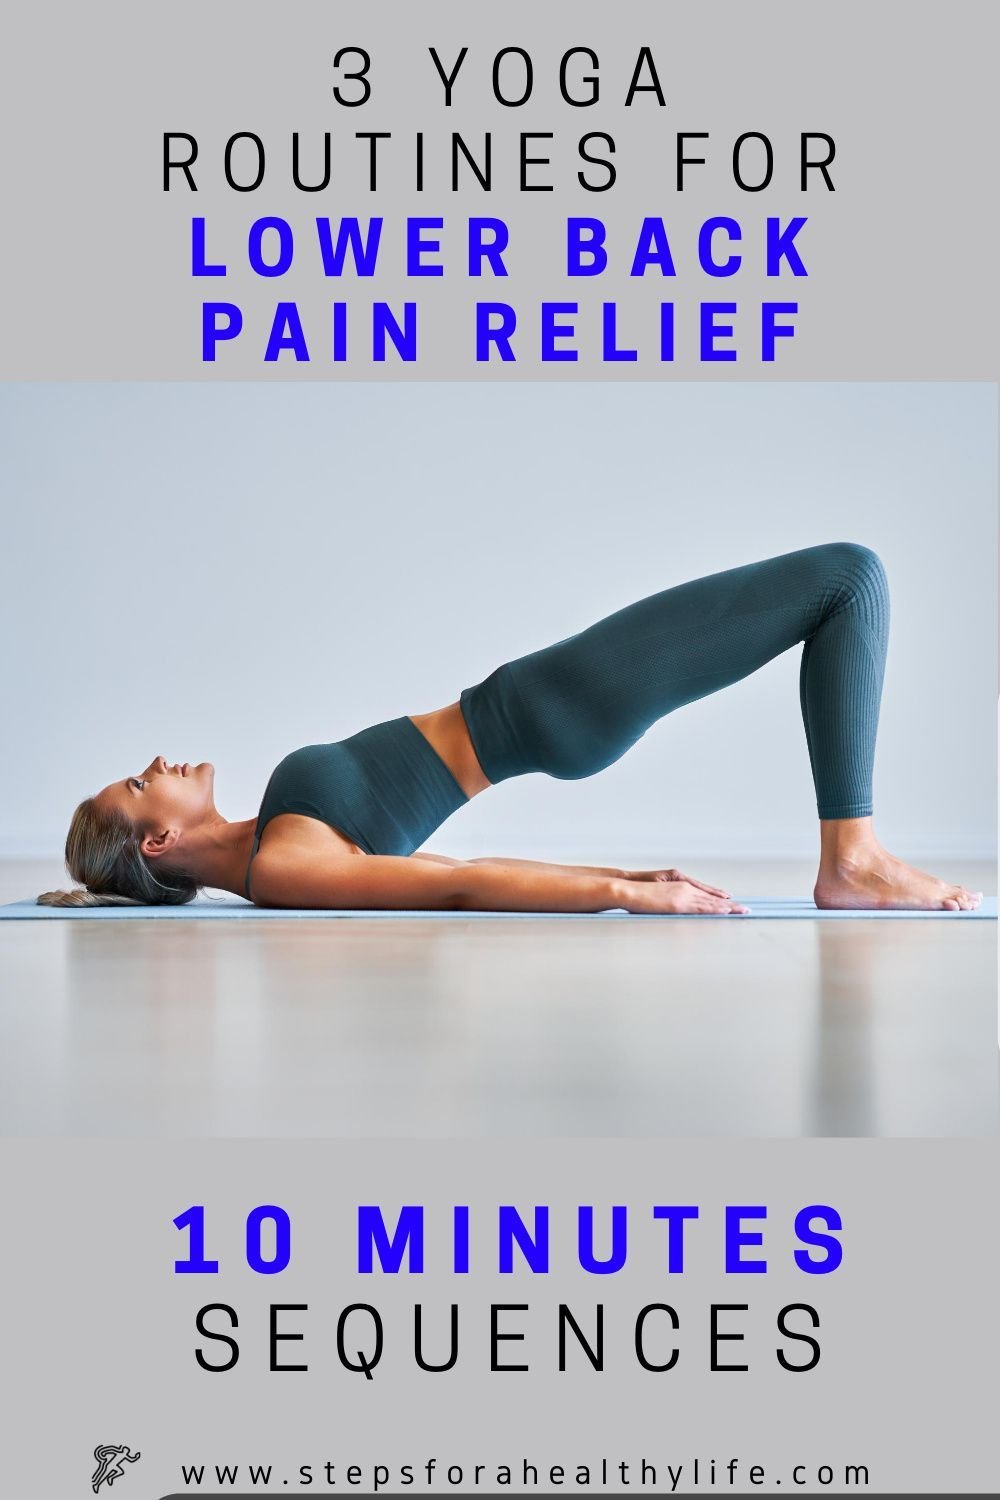 3 Yoga routines for lower back pain relief(beginners)